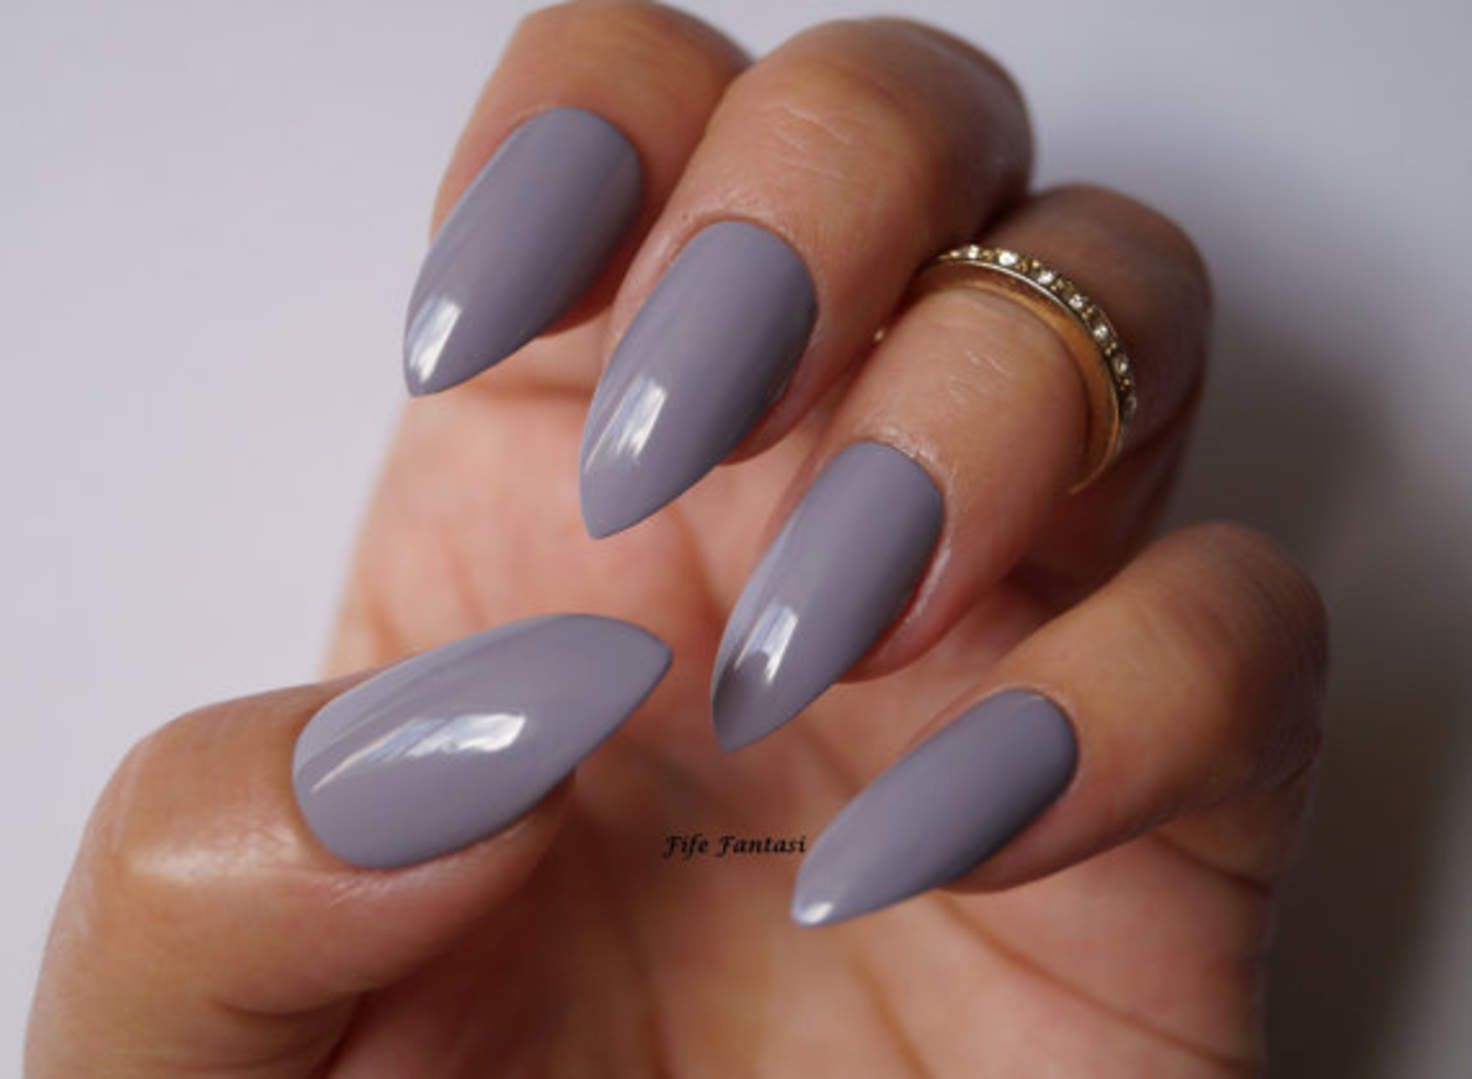 Grey Stiletto Nails Nail Art Nail Designs Nails Stiletto Nails